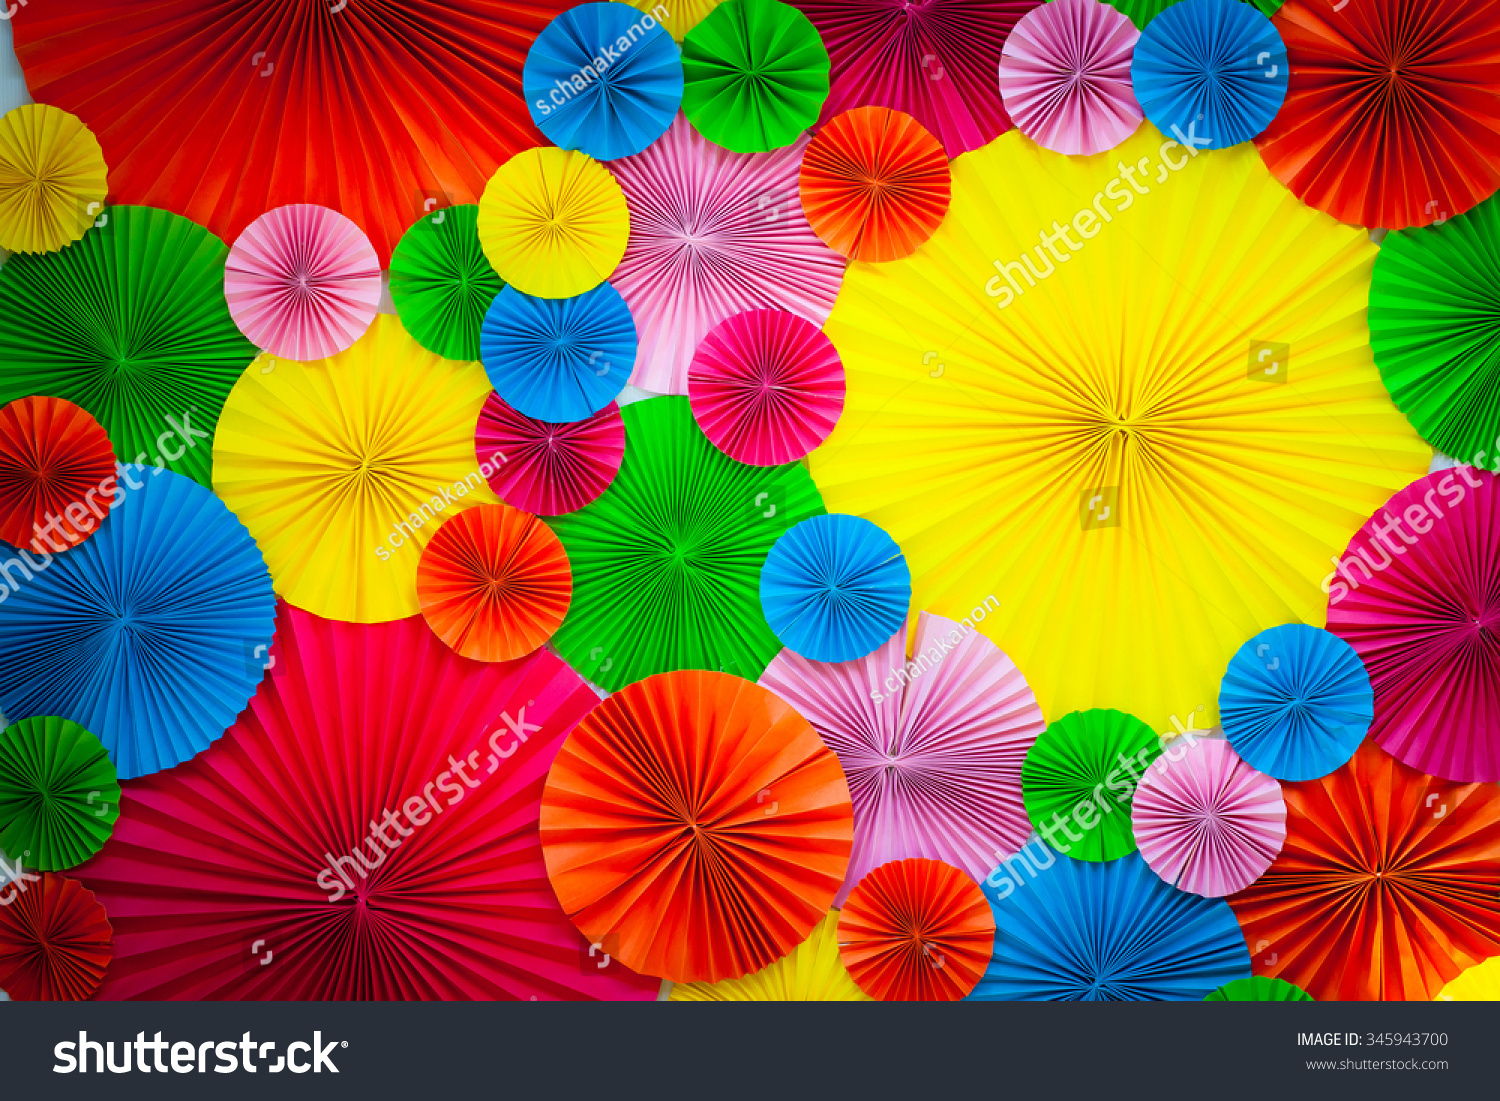 Buntes Papier Colorful Paper Background Stock Photo 345943700 Shutterstock